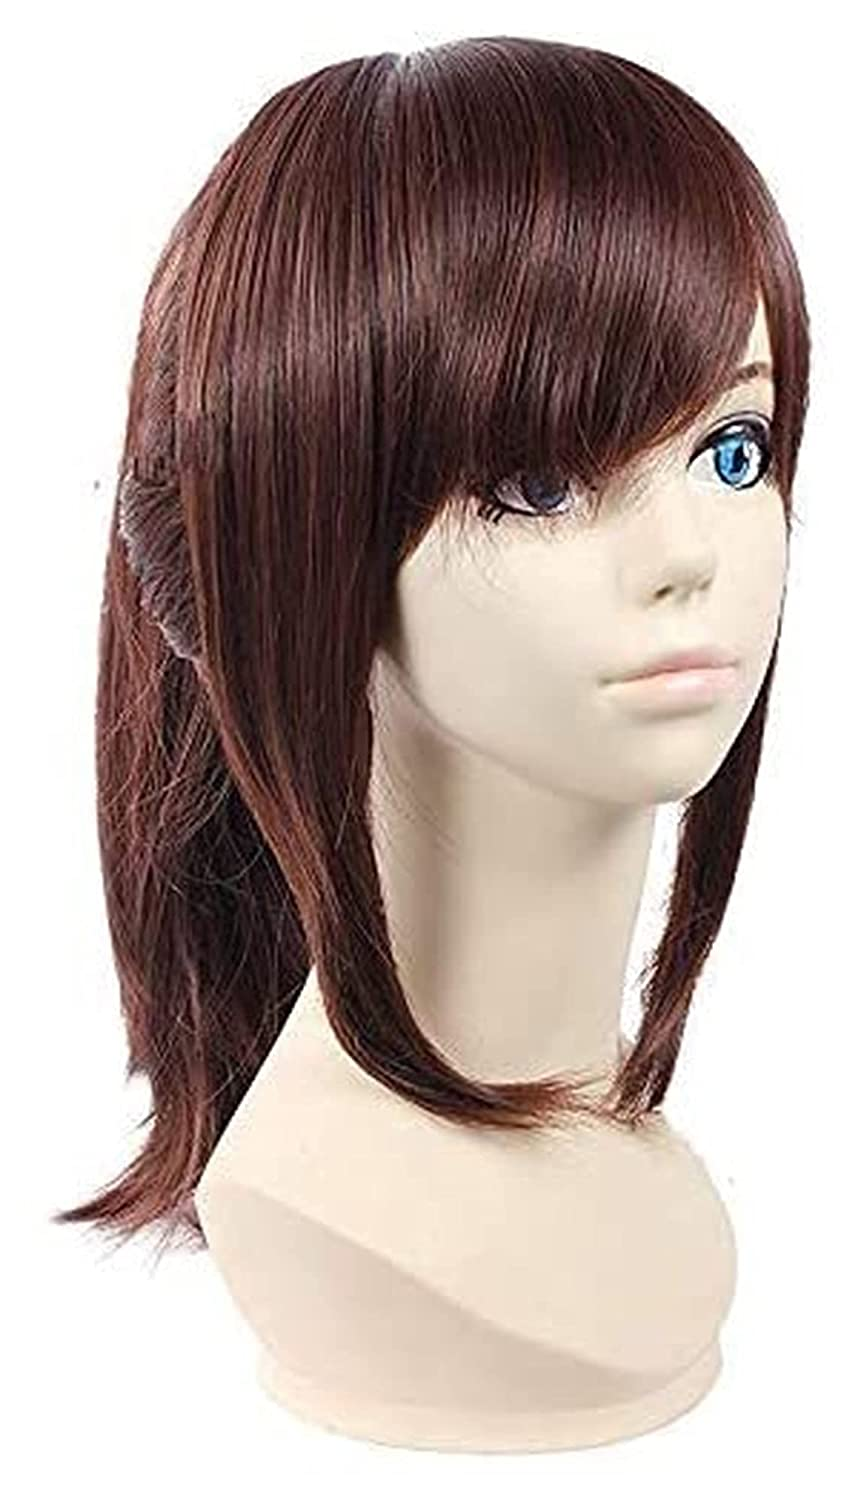 Hair Industry No. 1 caps and wig OFFicial store Attack On Shor Sasha Wig Blouse Titan Cosplay